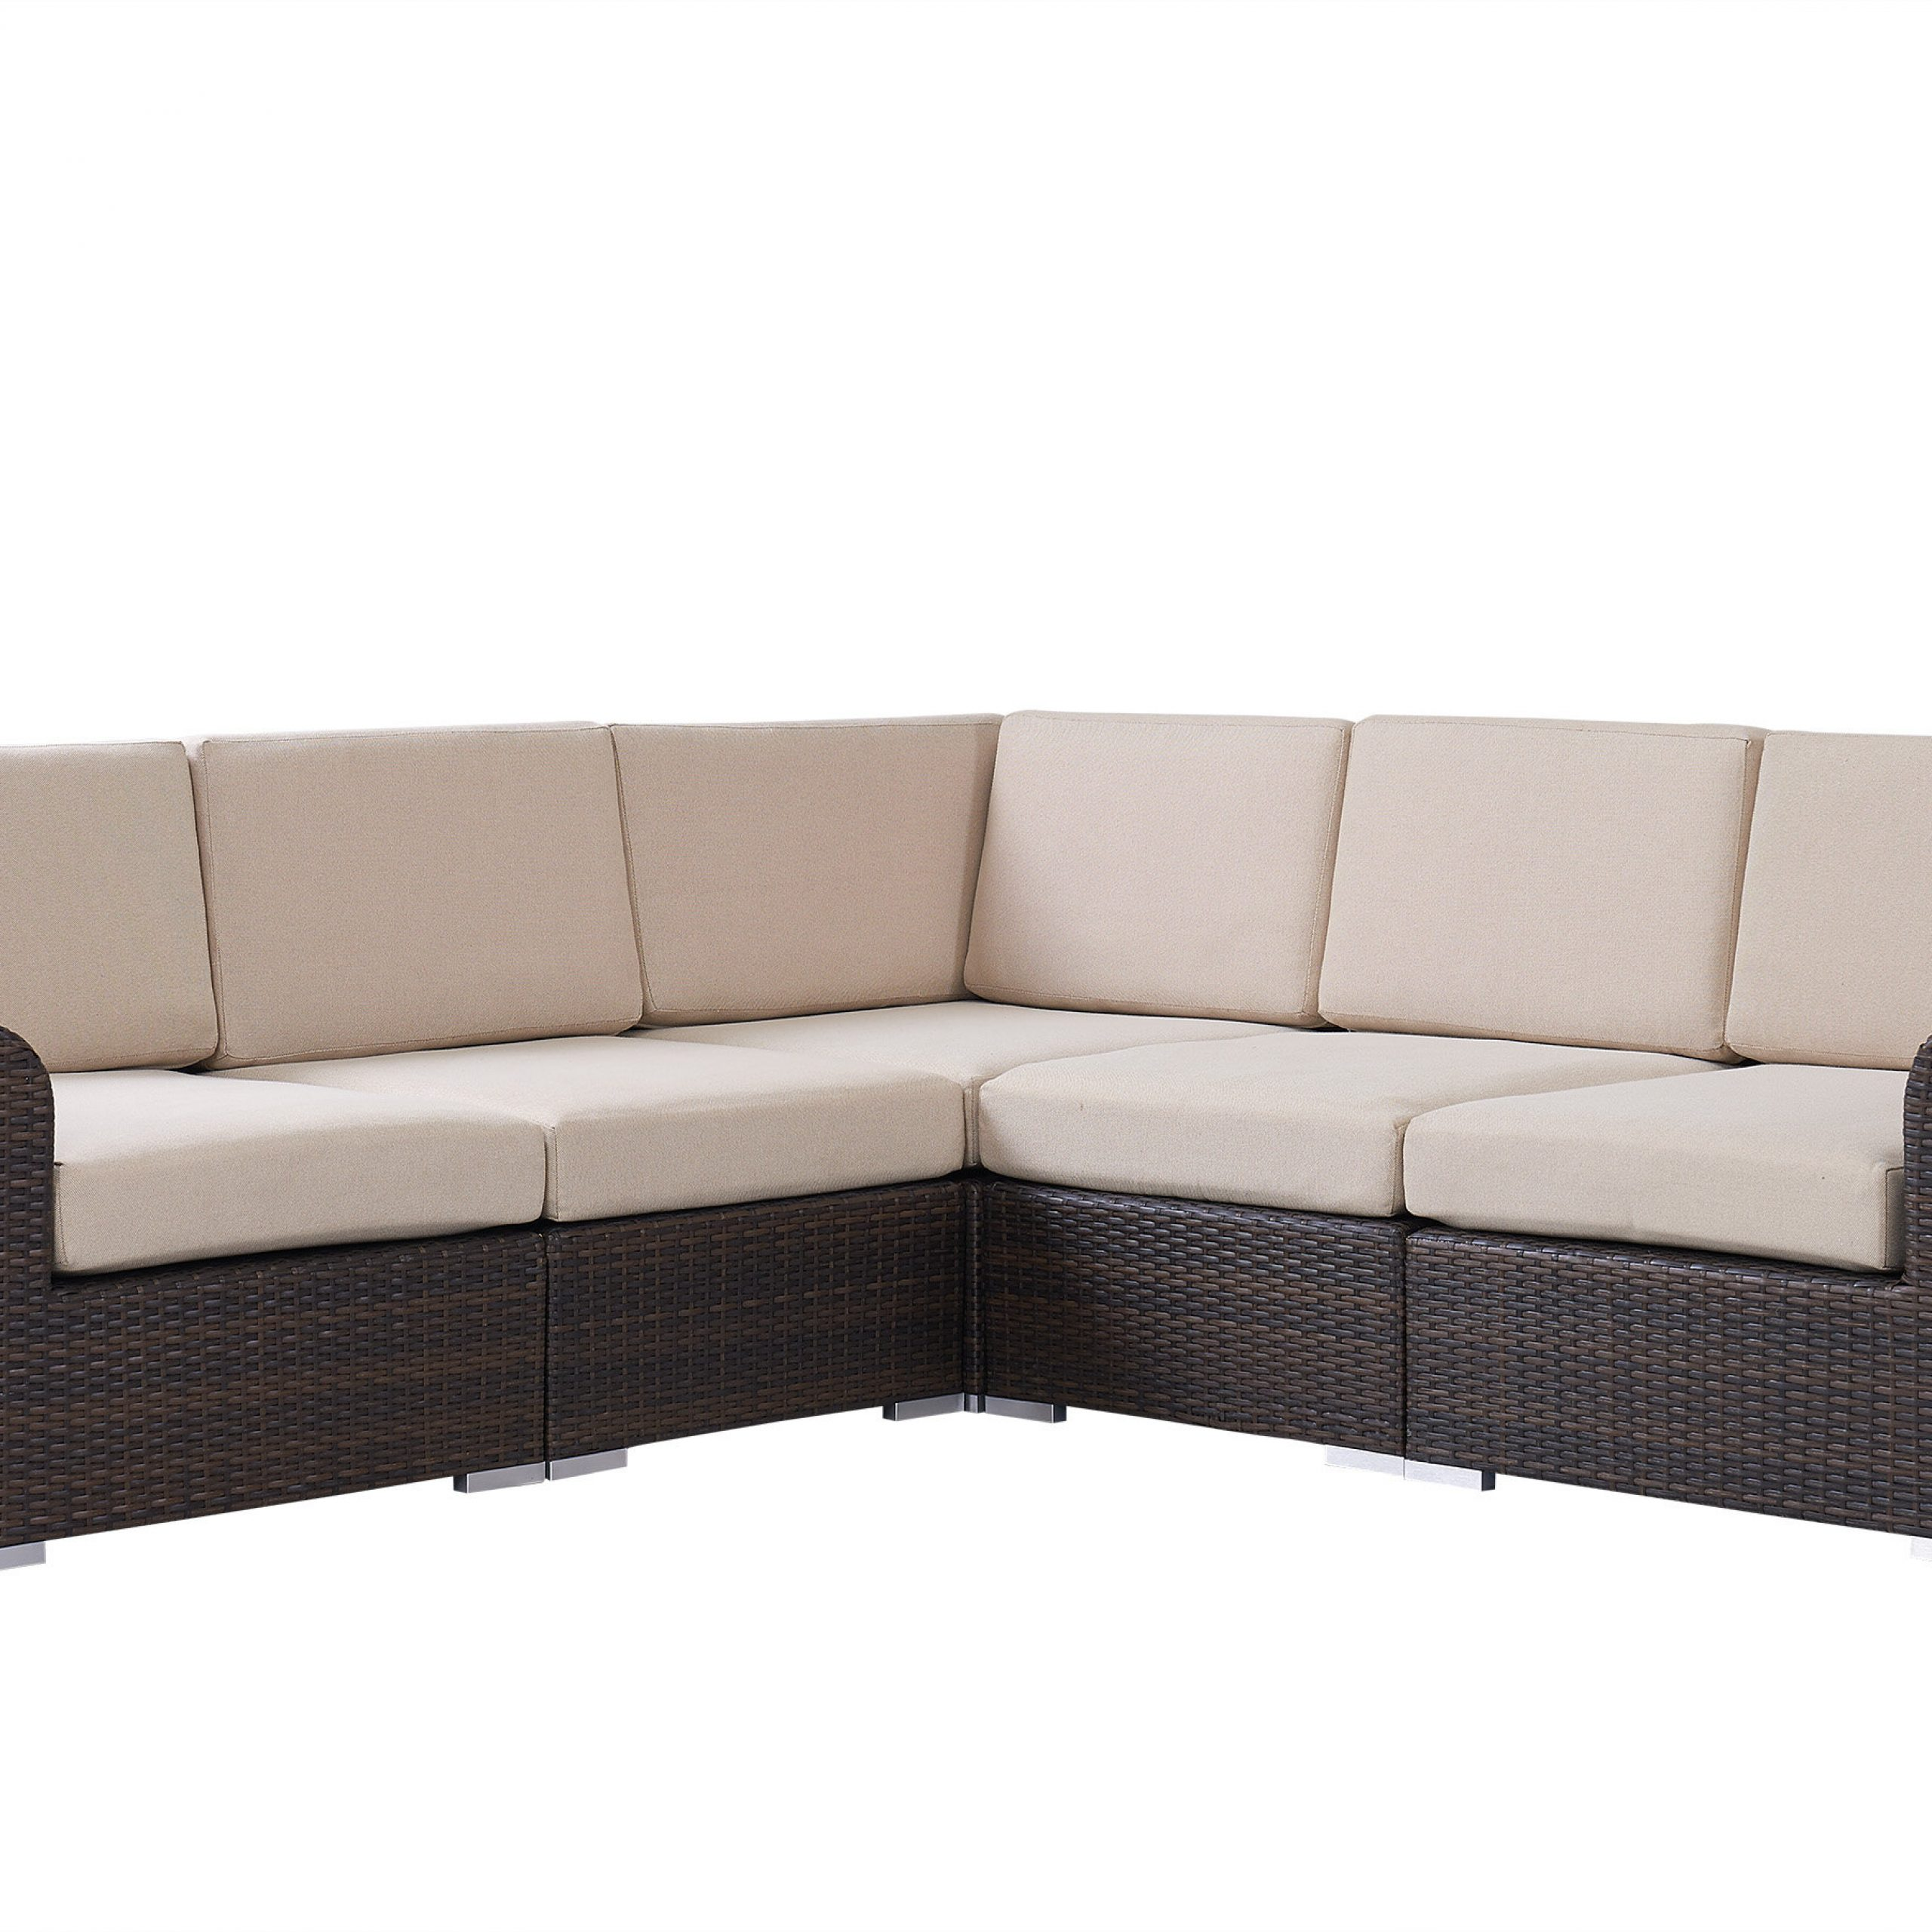 Well Known Brookhaven Patio Sectional With Cushions In Catalina Outdoor Right Arm Sectional Pieces With Cushions (Gallery 24 of 25)